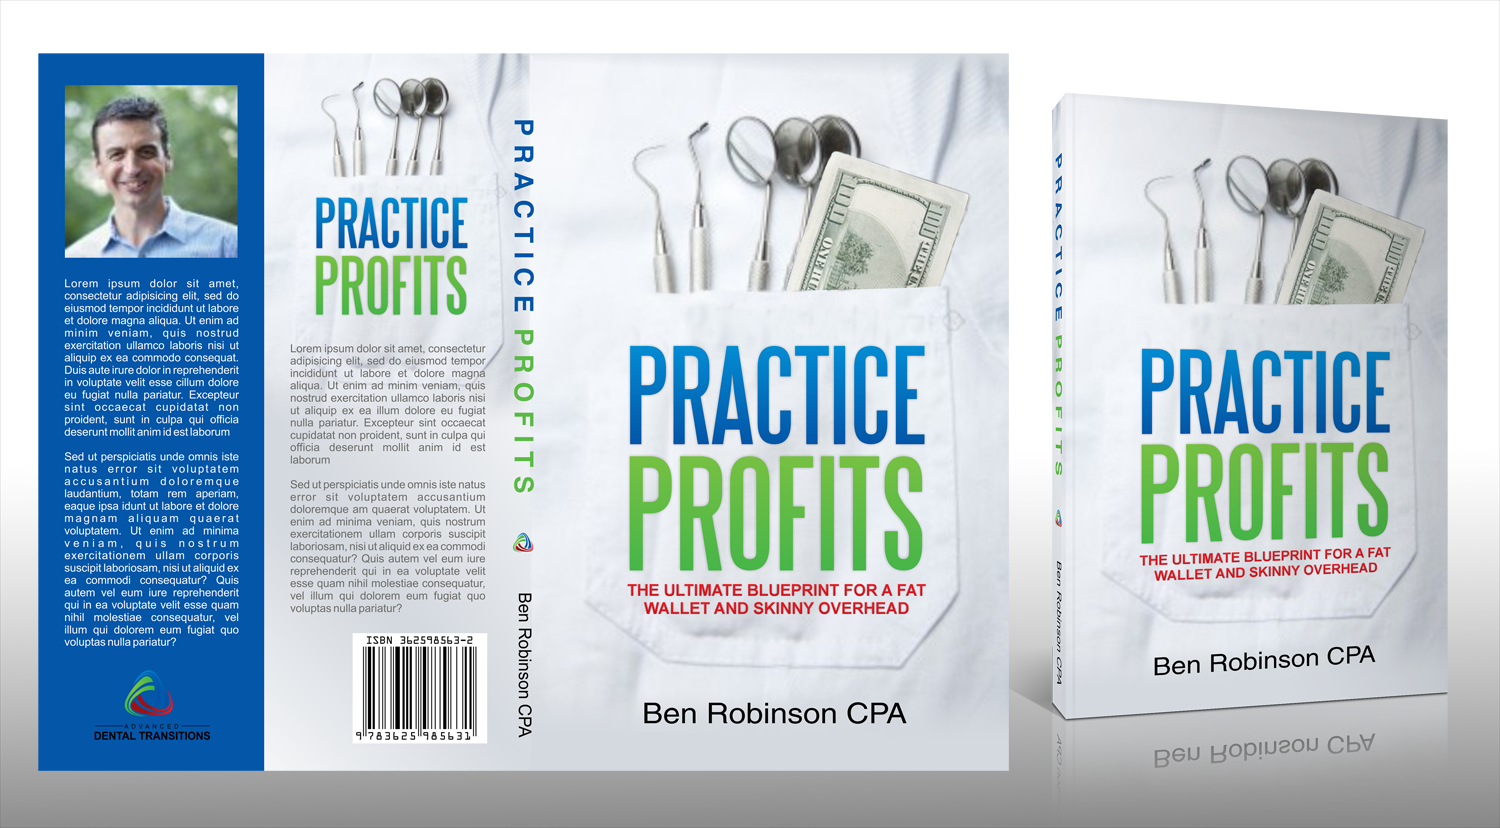 Create Business Book Cover Design written by an accountant to dentists